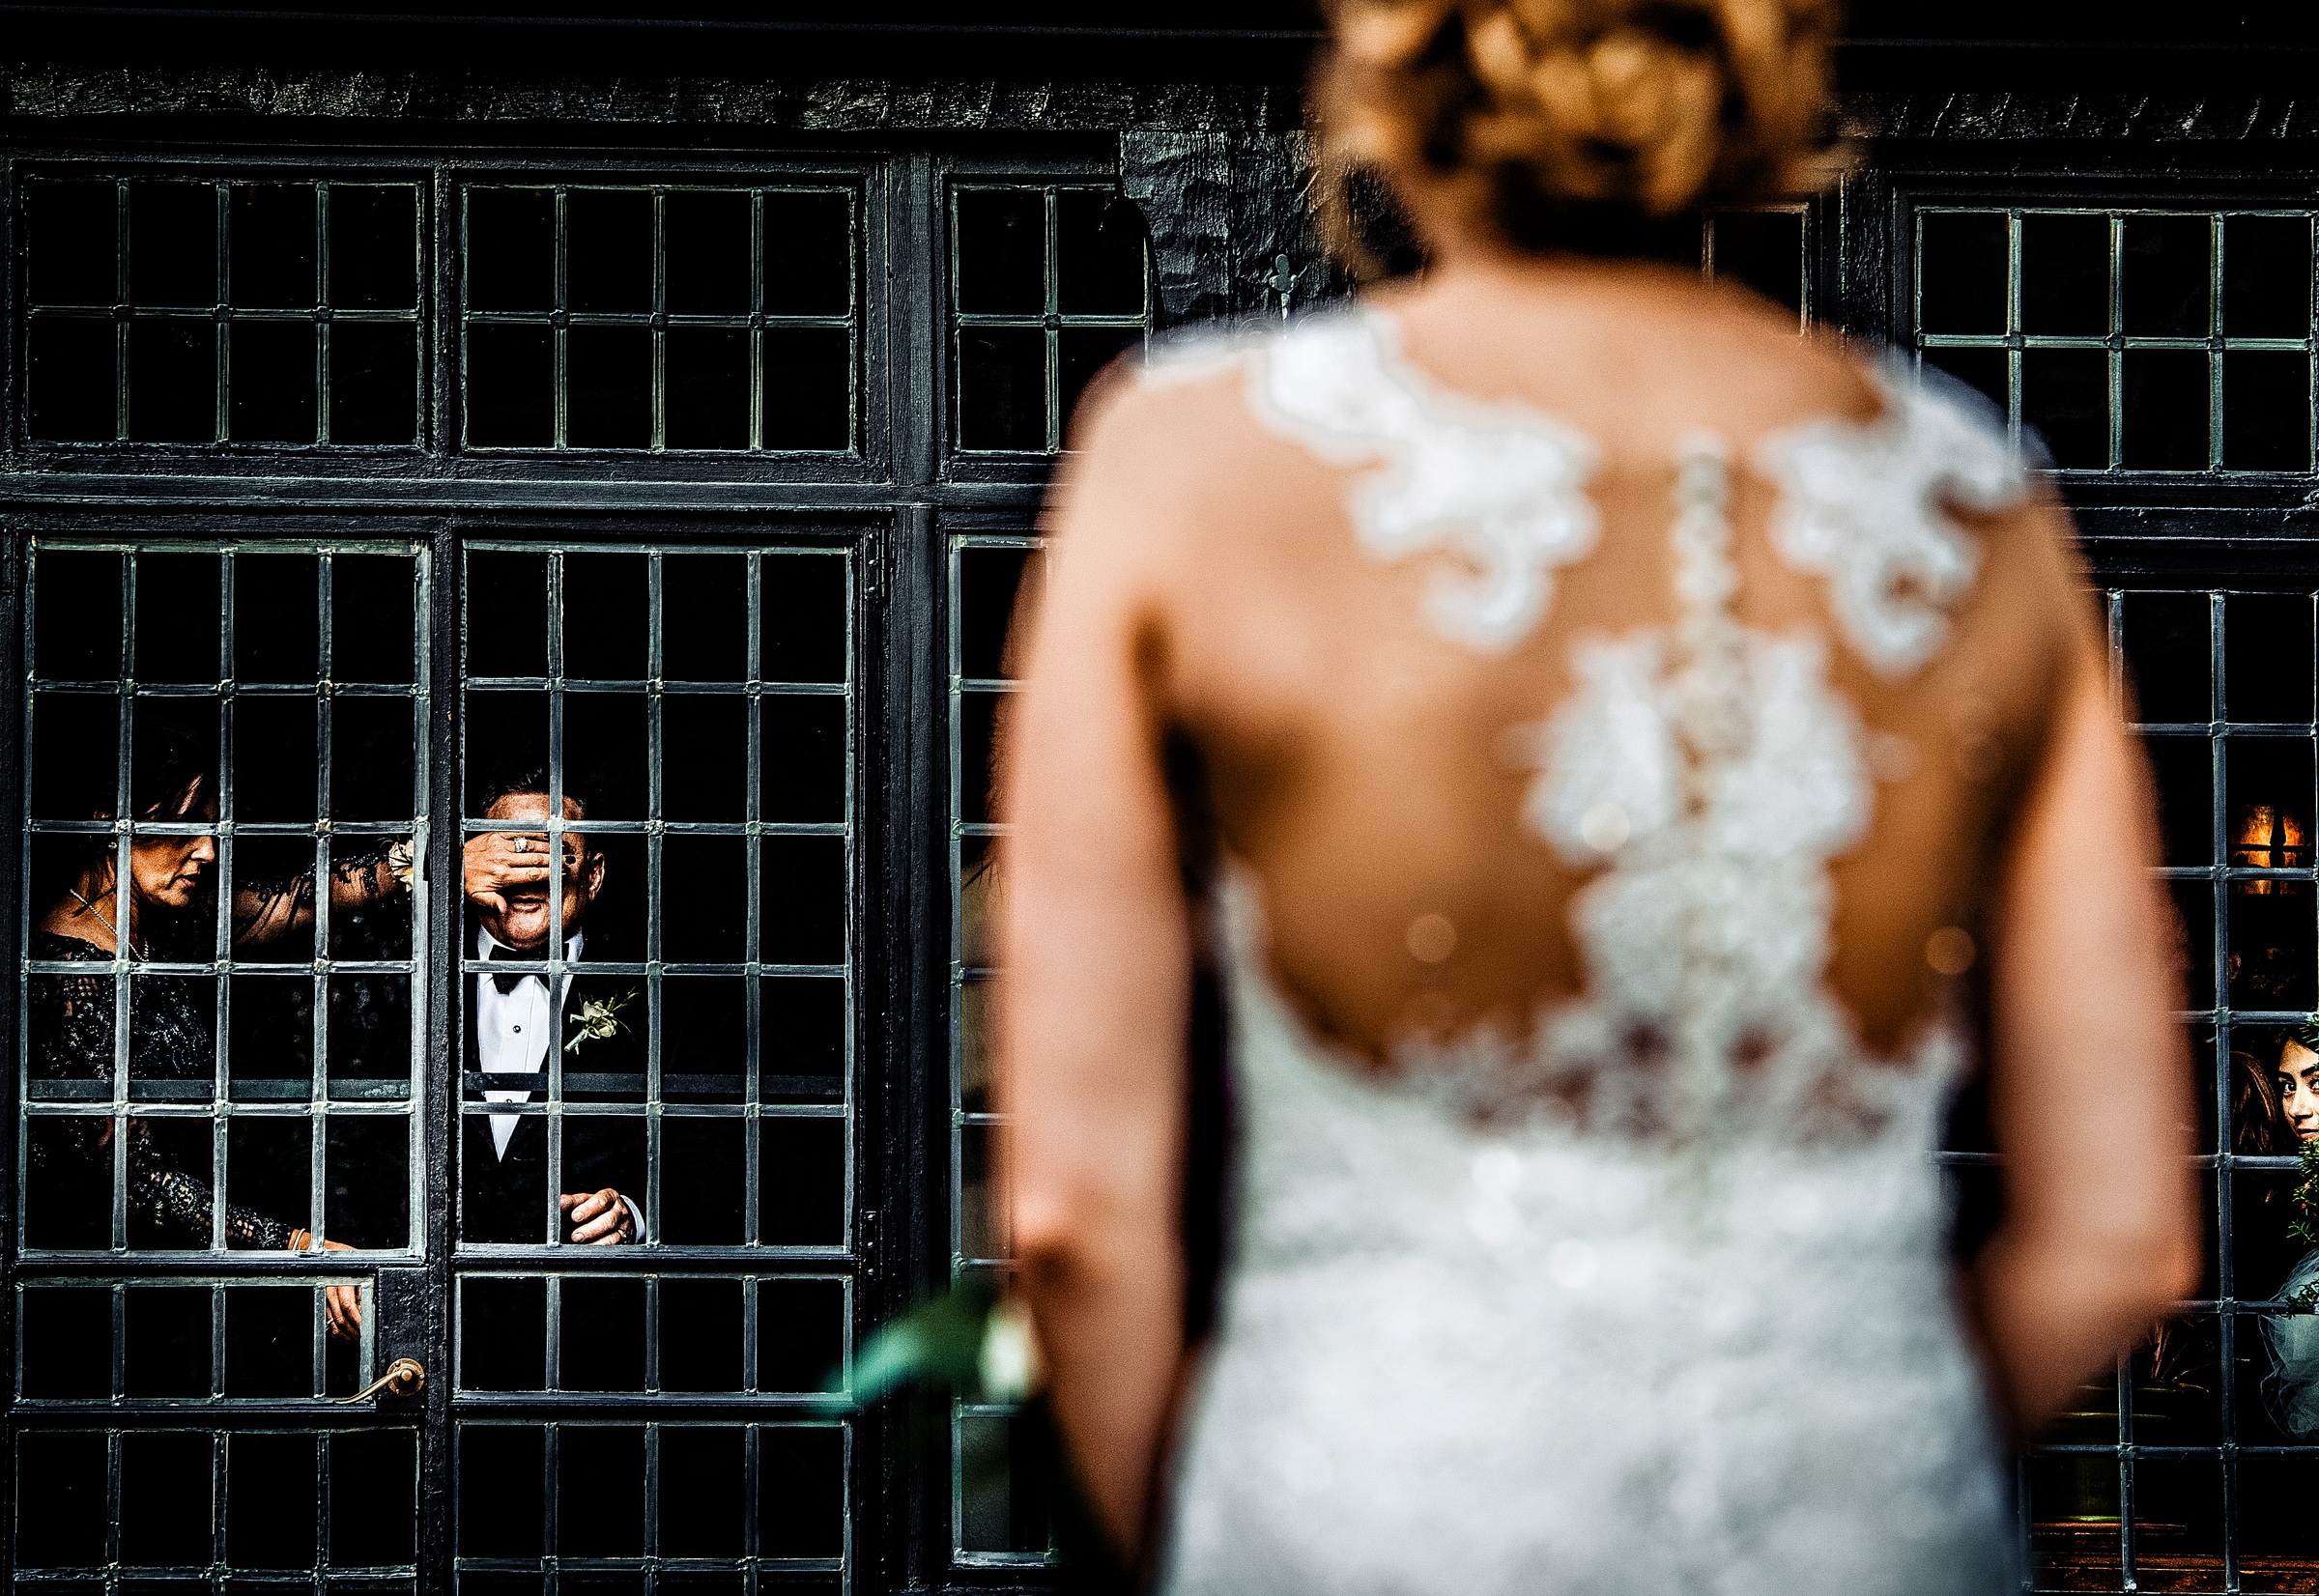 bridesmaid-cover-grooms-eyes-as-bride-approaches-jeff-tisman-photography-new-york